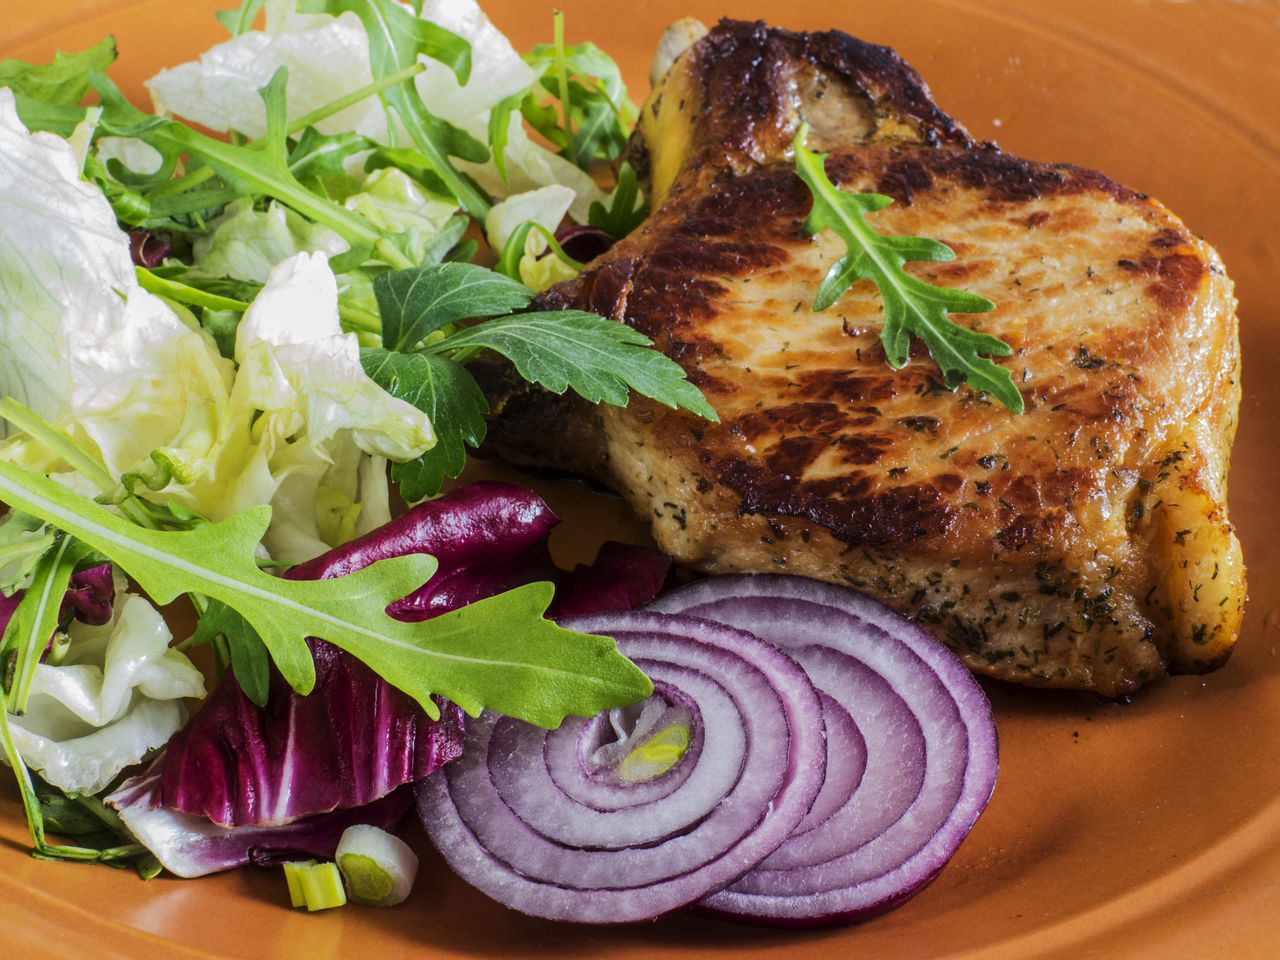 Roasted pork chop on a plate with a green salad, red onion on an old wooden weathered table Chop Close-up Day Food Food And Drink Freshness Green Healthy Eating Indoors  Lettuce No People Old Onion Plate Pork Ready-to-eat Relaxing Roasted Salad Table Weathered Wooden